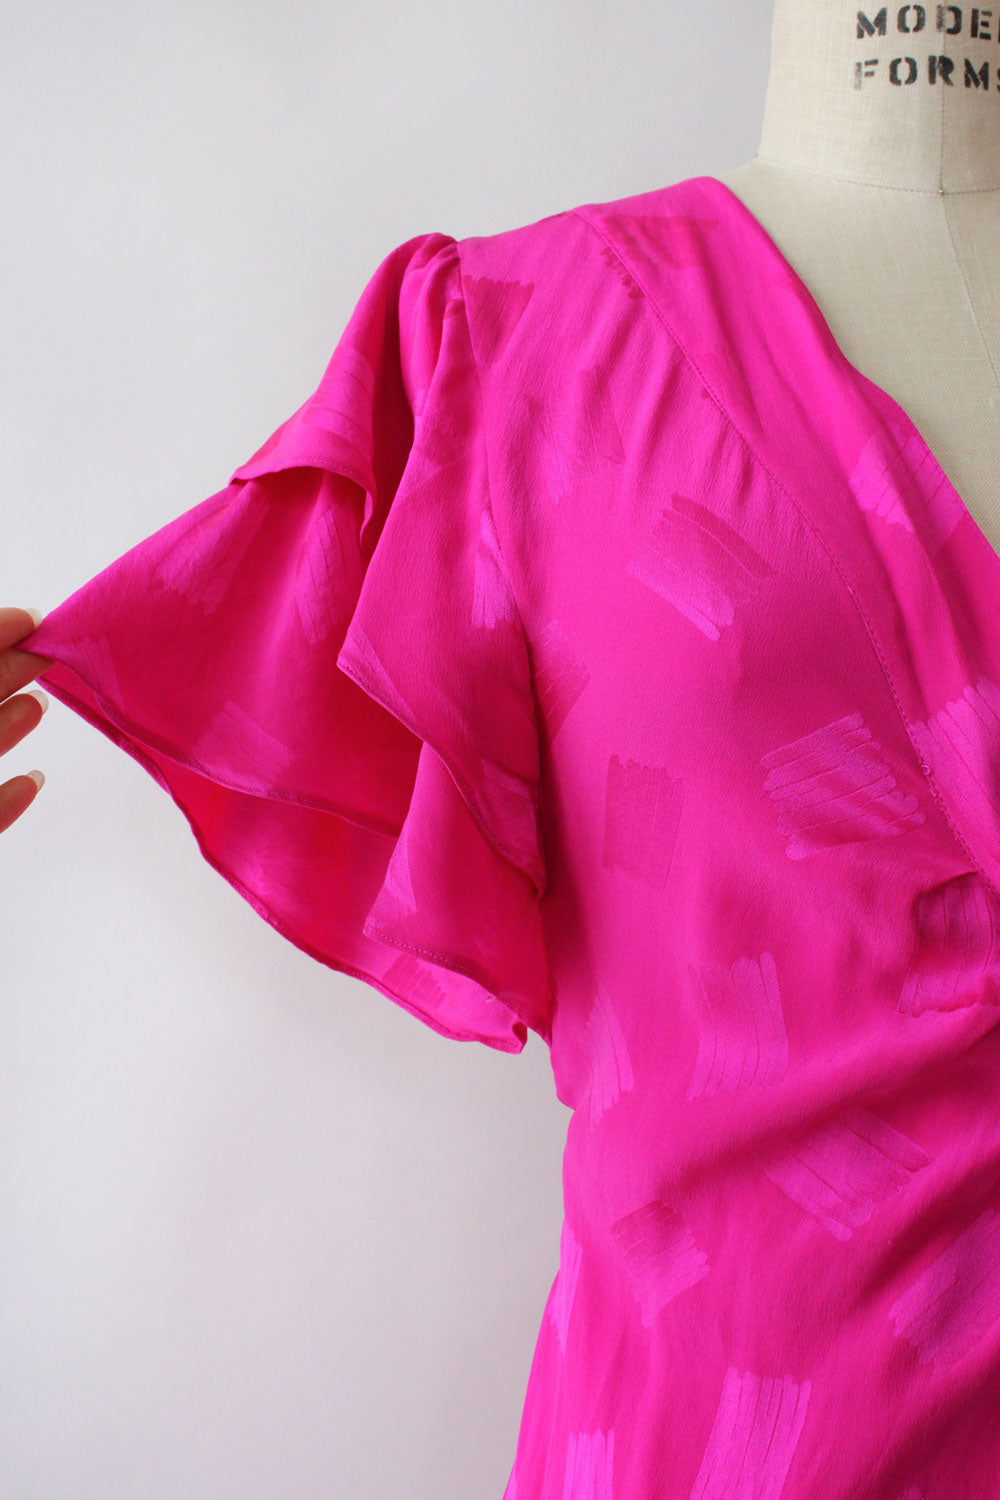 Hot Pink Silk Flutter Dress S/M